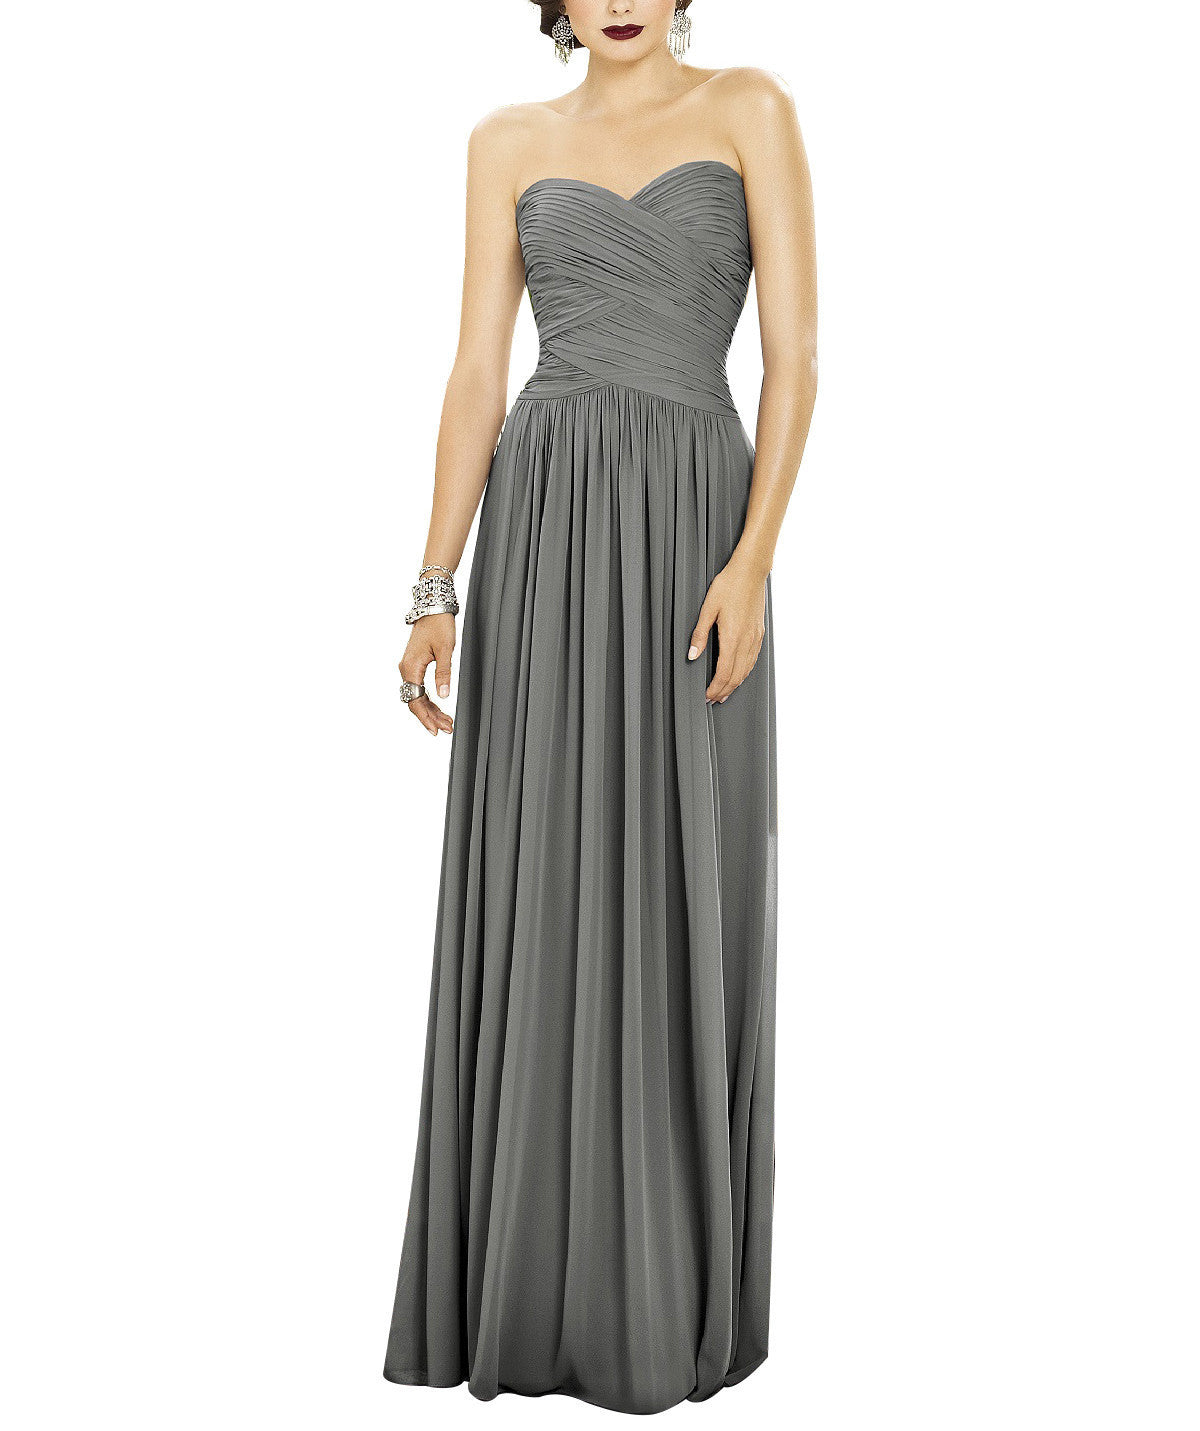 Dessy collection style 2880 quickship bridesmaid dress brideside dessy collection style 2880 quickship ombrellifo Gallery